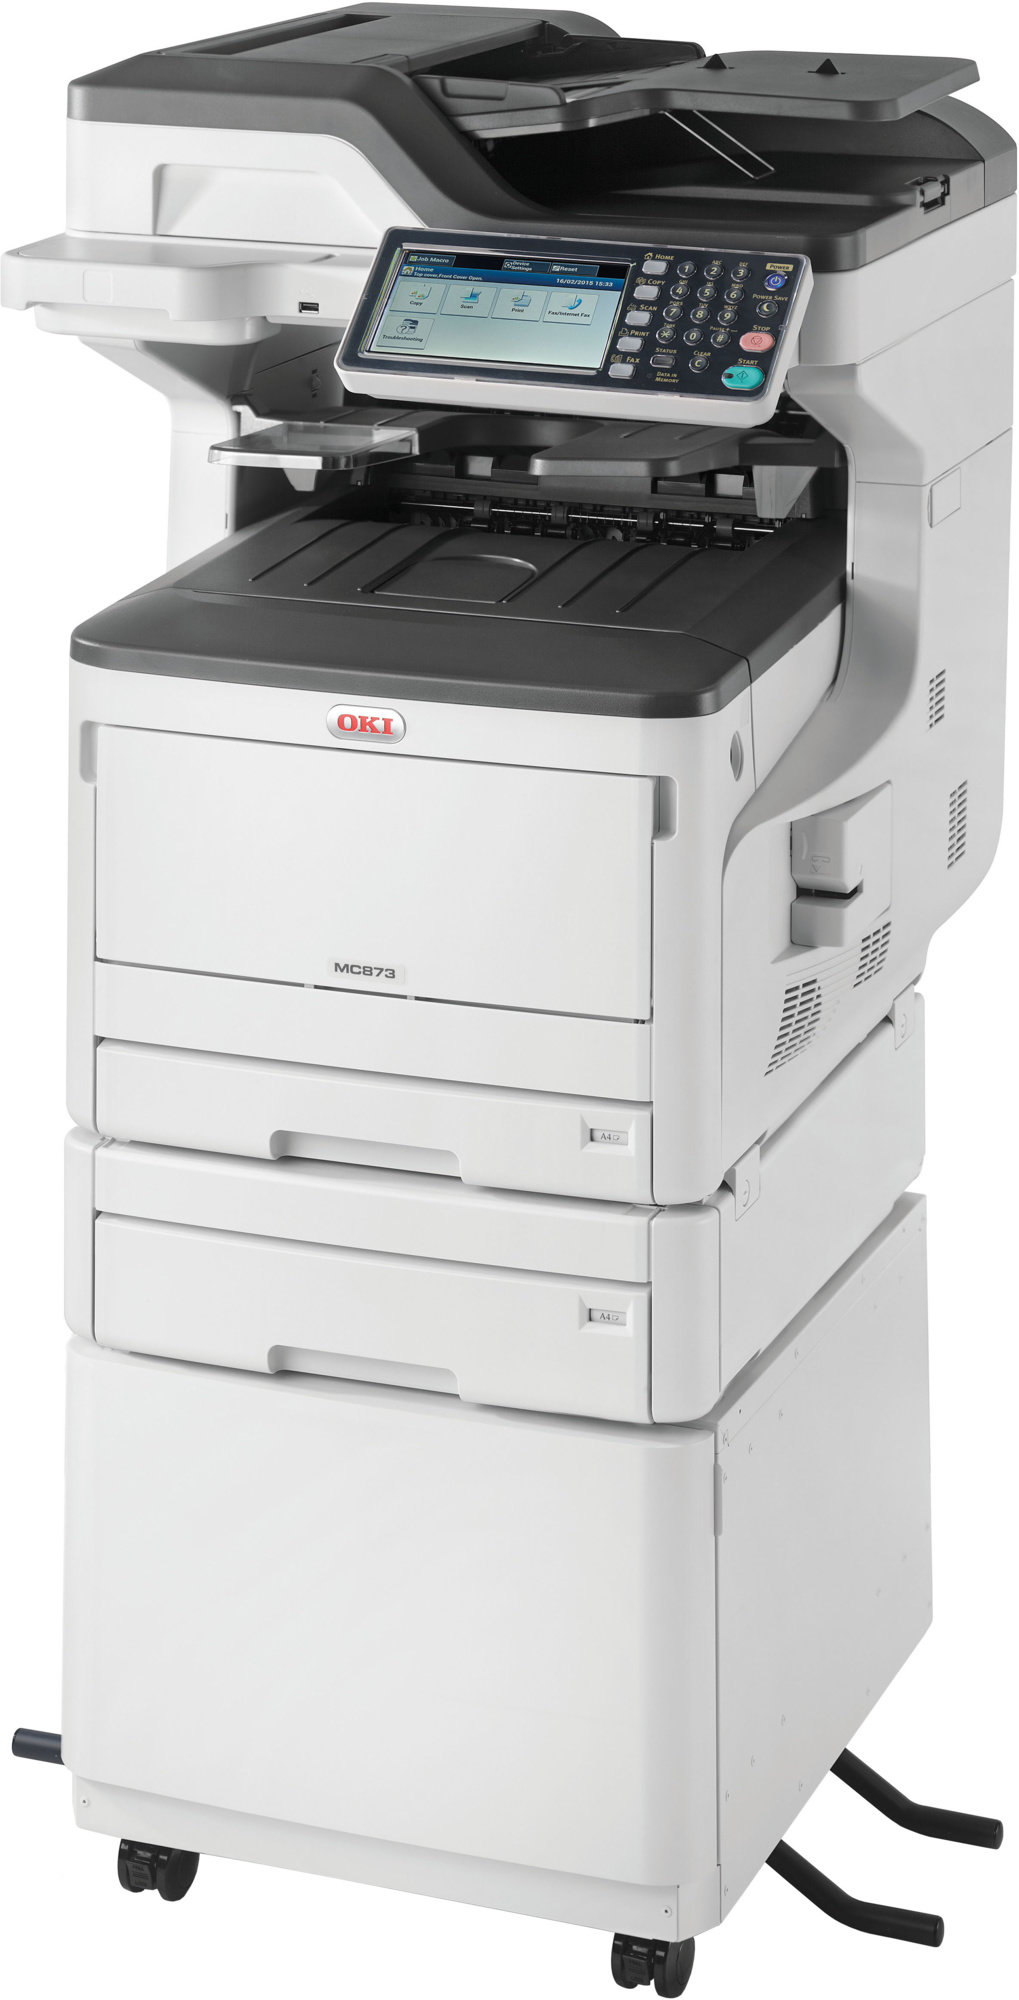 OKI MC873dnct A3 35/35 ppm ProQ2400 dpi PCL6/PS3,USB 2.0,LAN (Print/Scan/Copy/Fax)